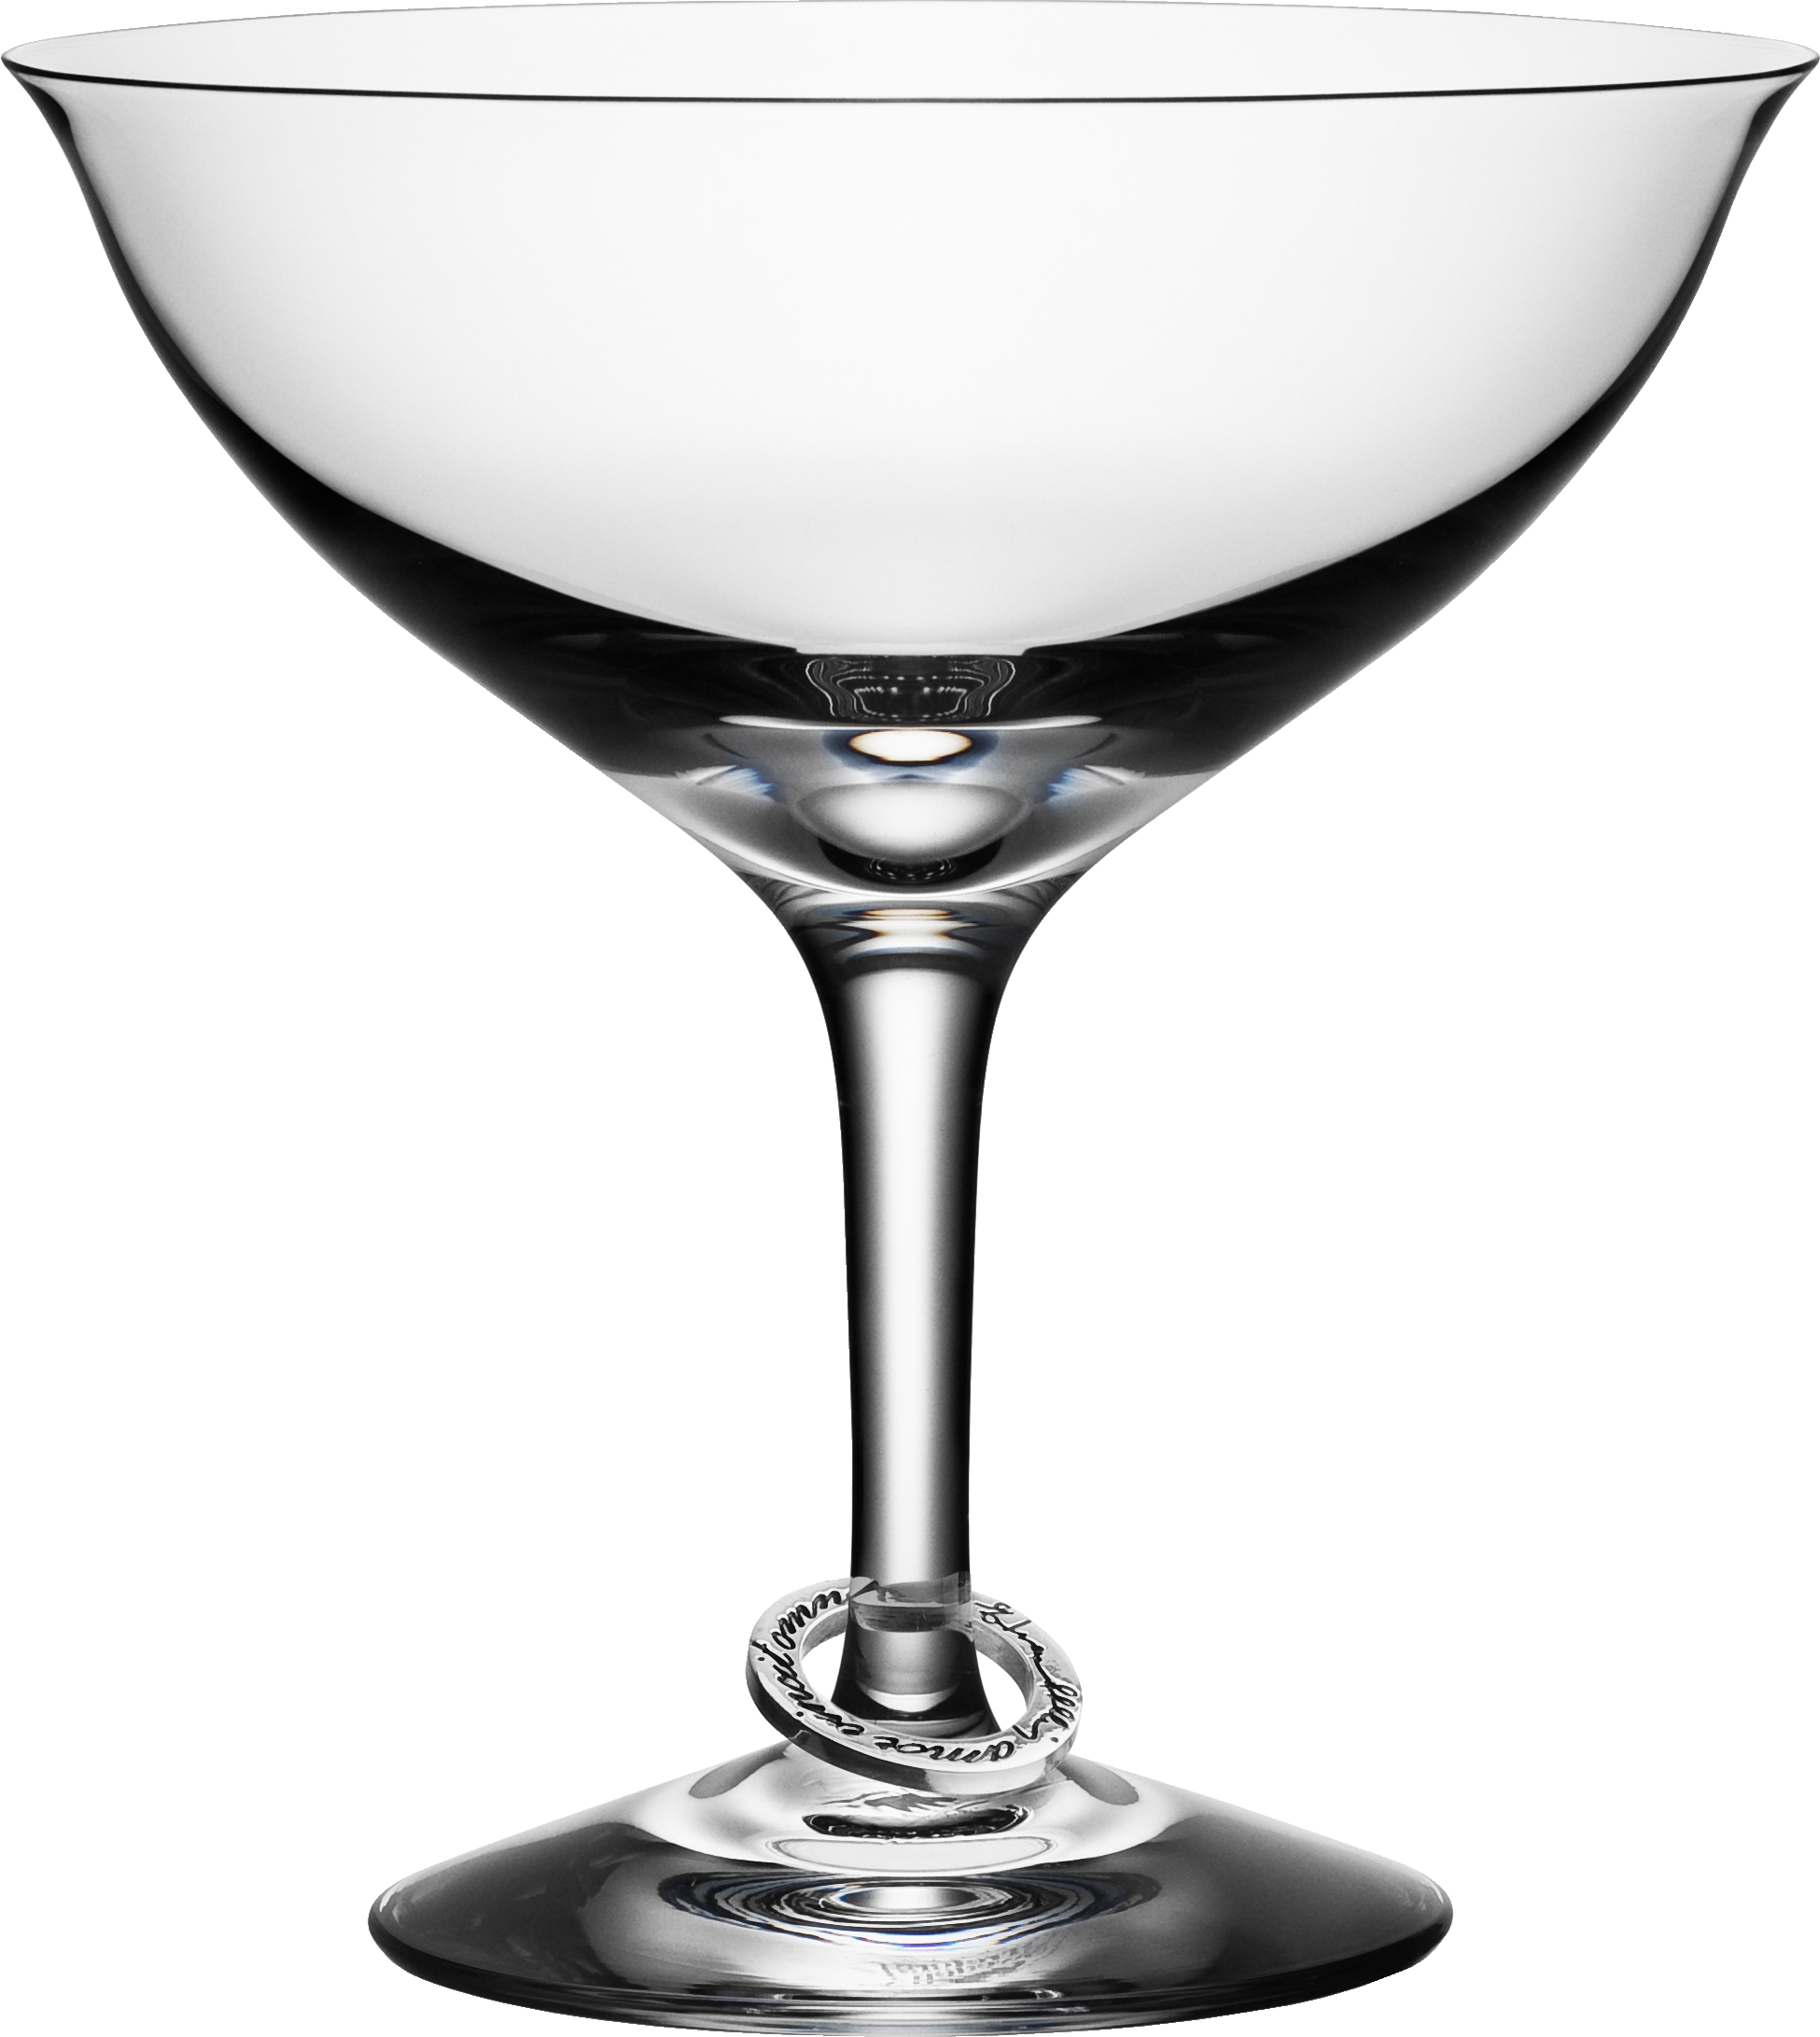 Glass PNG Image 47014 - Web Icons PNG